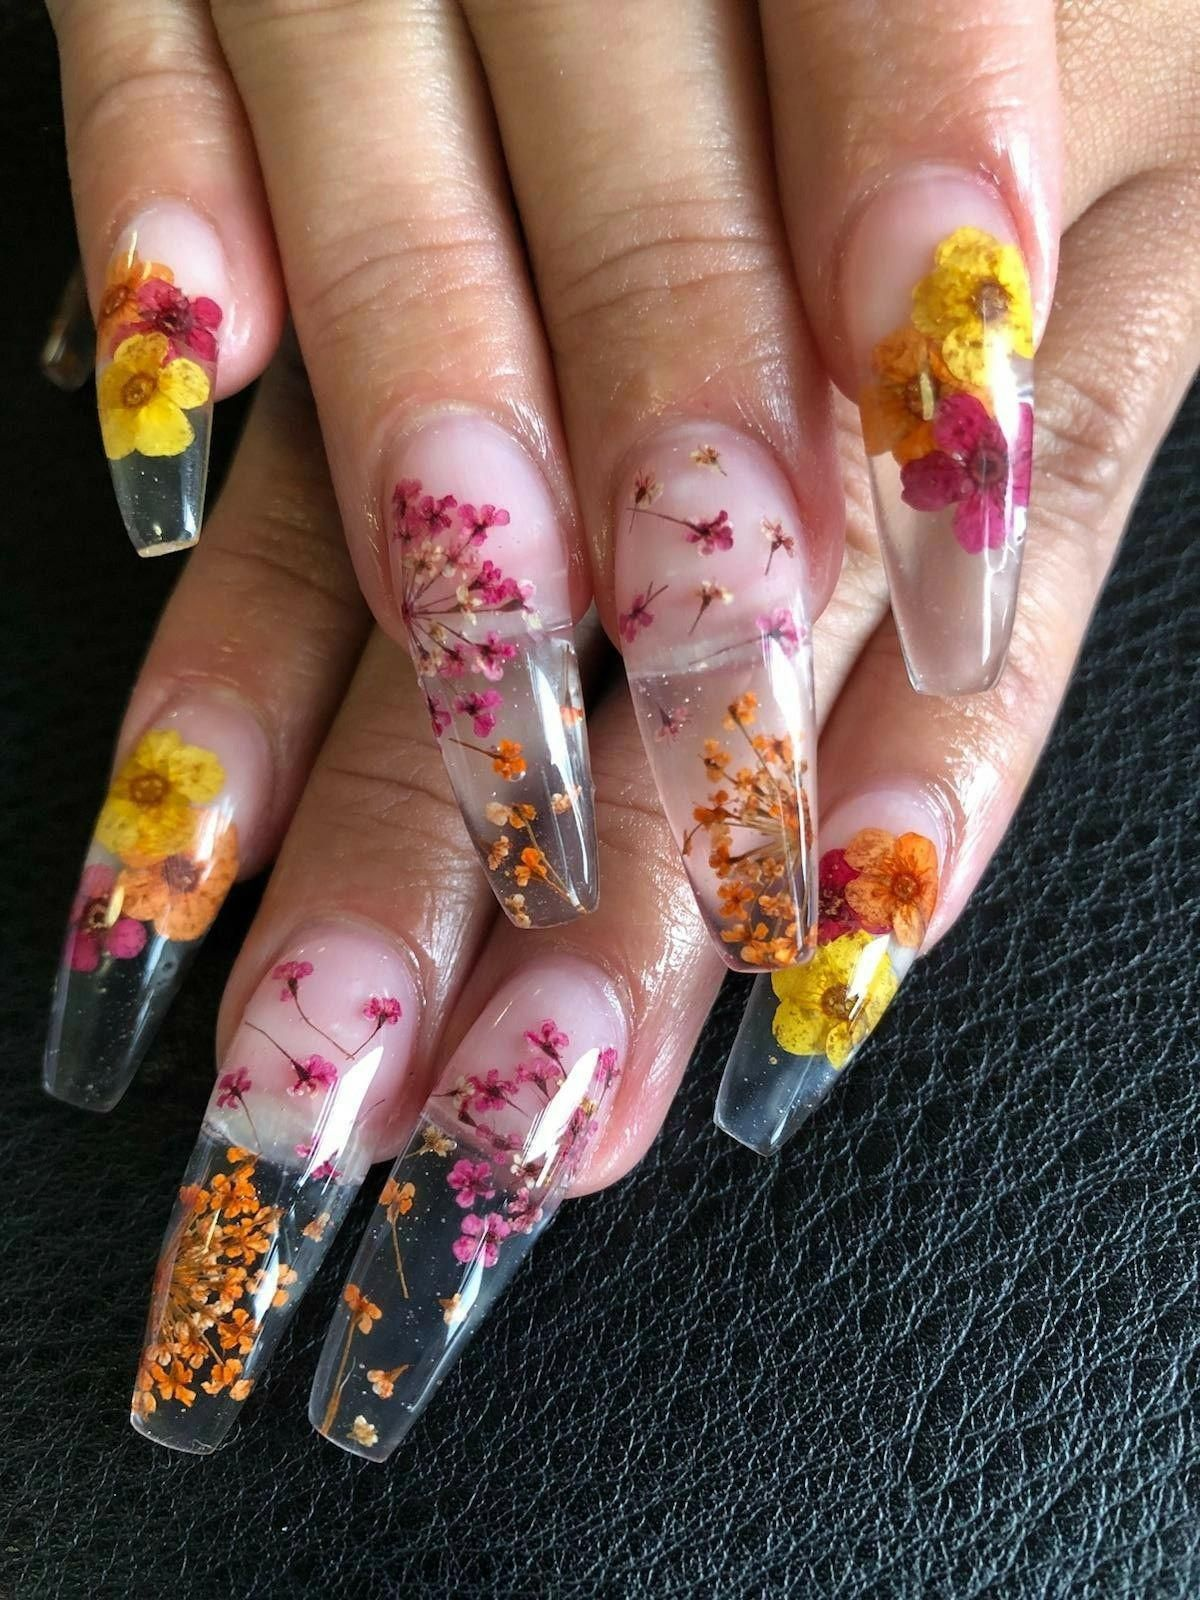 Dried Flower Acrylic Nails Acrylicnaildesigns Flower Nails Acrylic Nail Designs Nail Art Designs